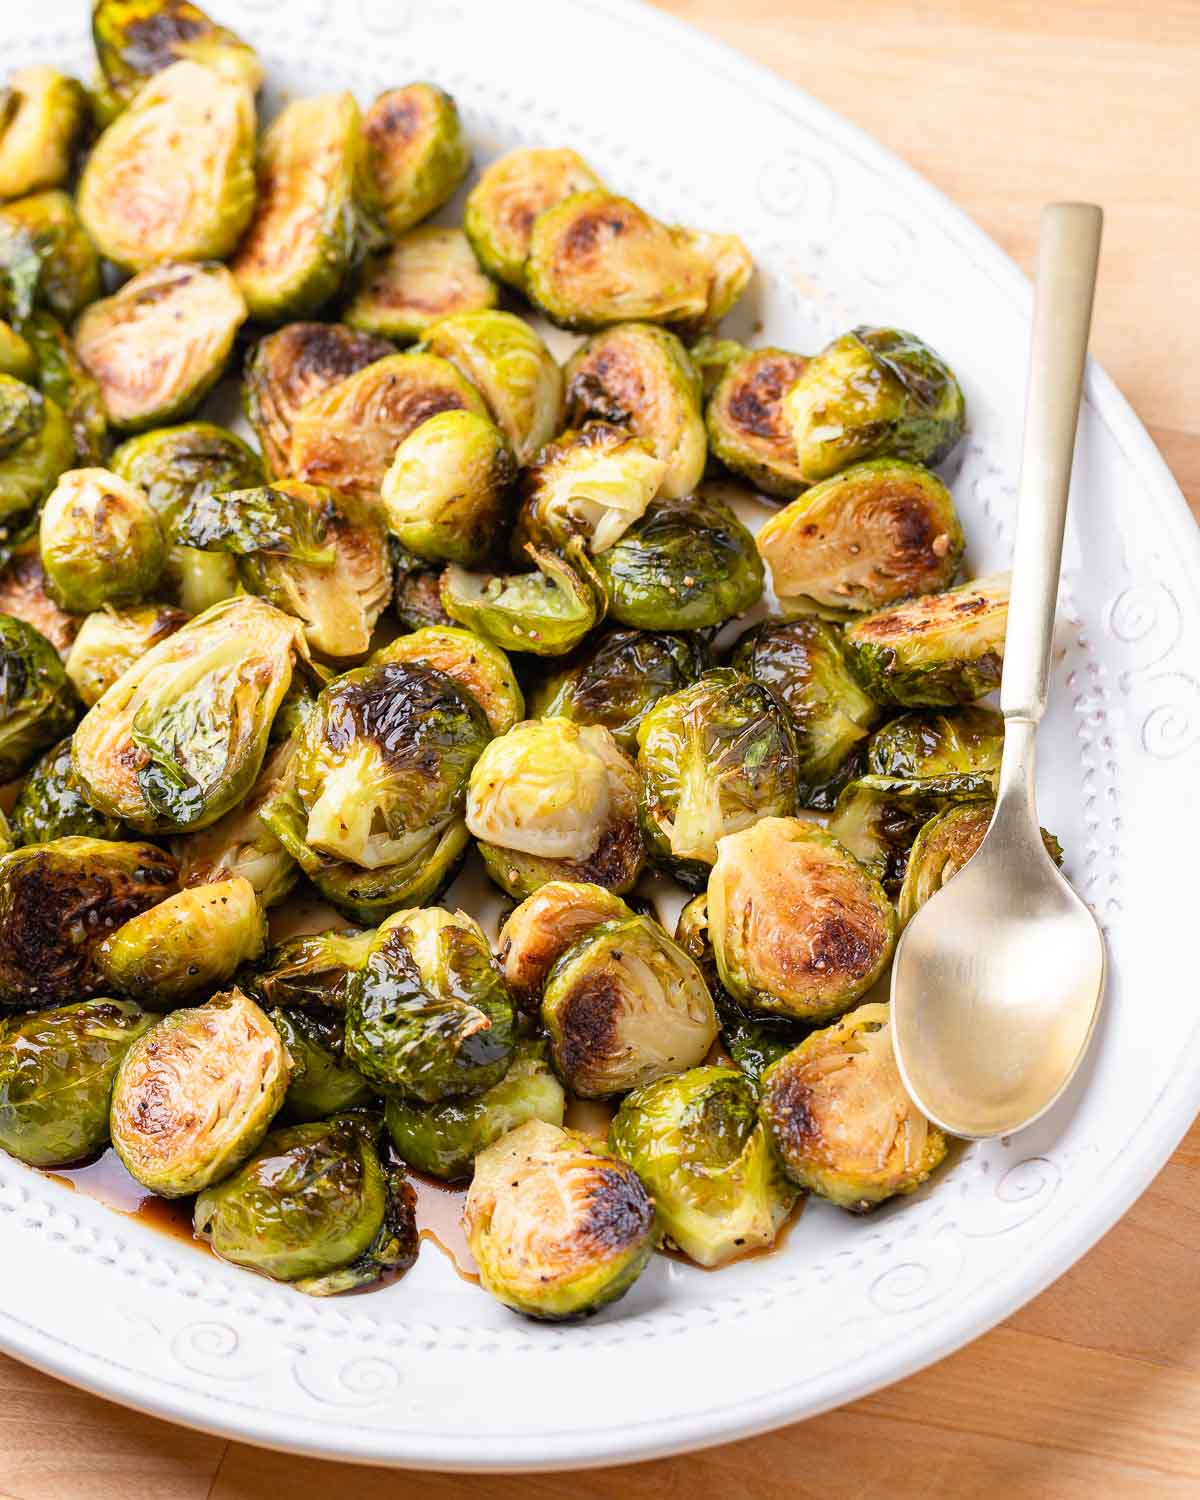 Plate of honey balsamic brussels sprouts in white plate with gold spoon.